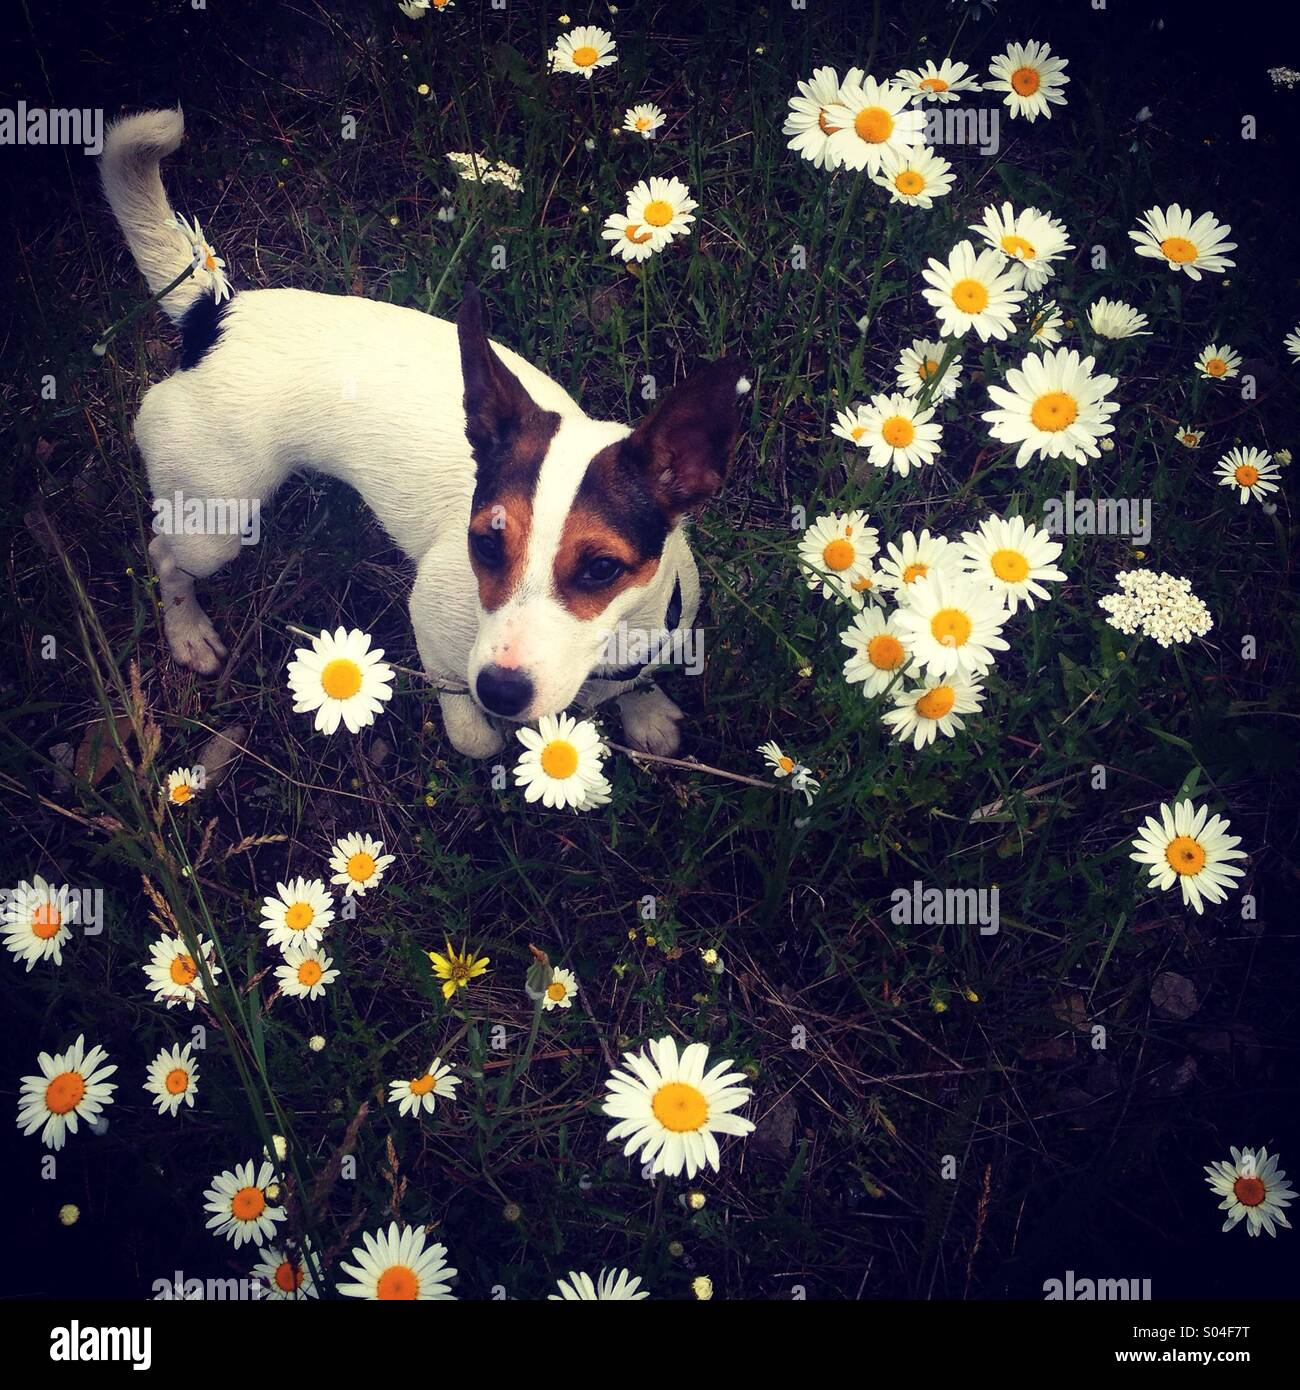 A ten-month-old Jack Russell Terrier puppy dog, named Daisy, photographed from above in a field of daisies. - Stock Image